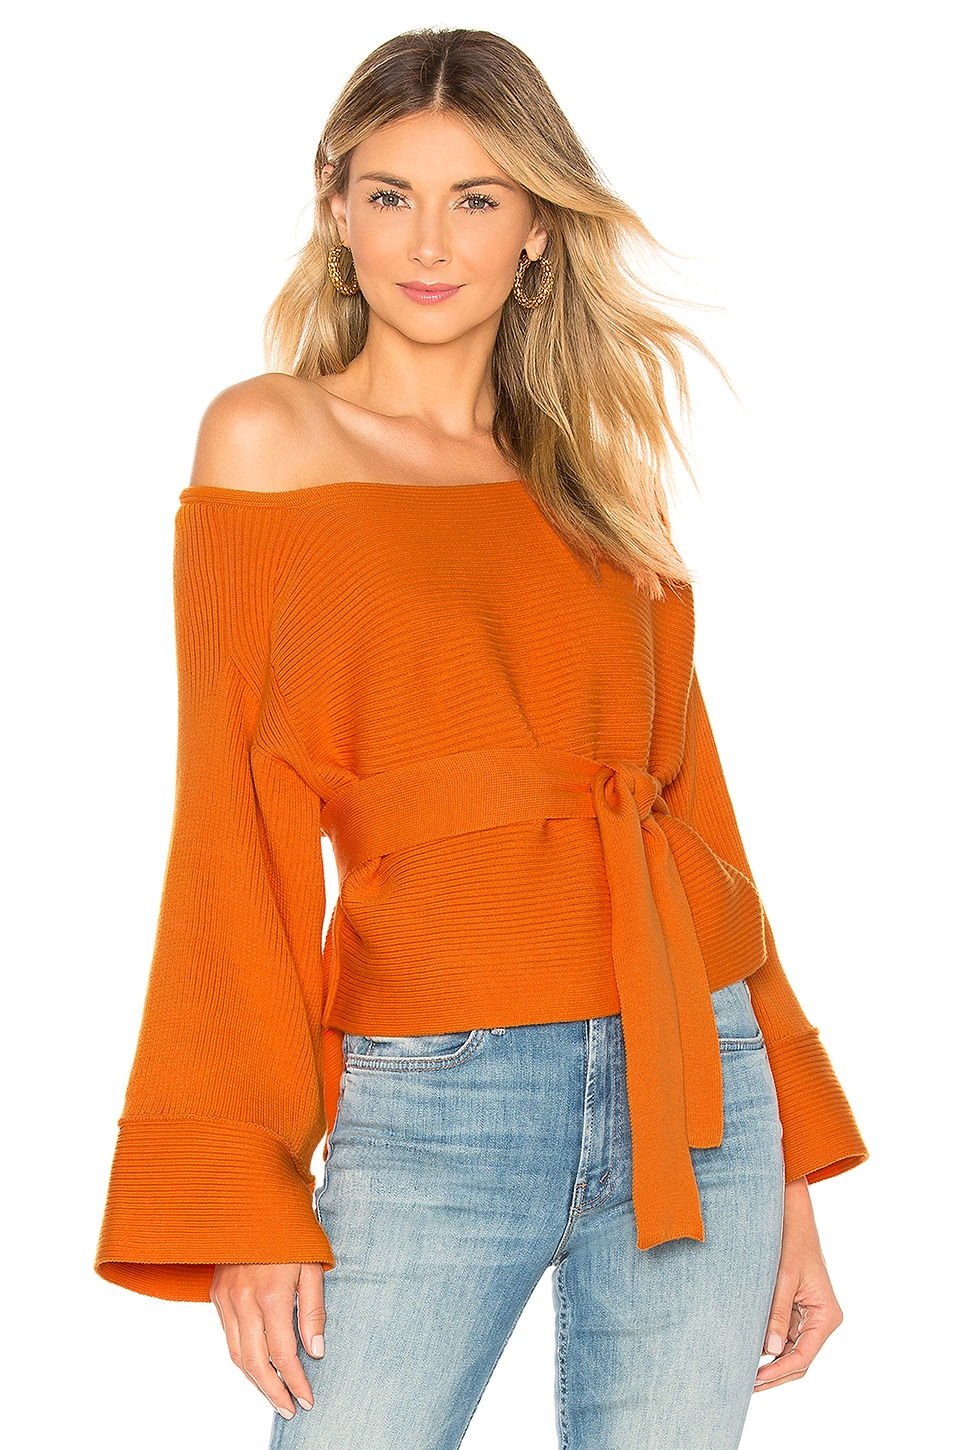 Mara Hoffman Lilou Top in Orange